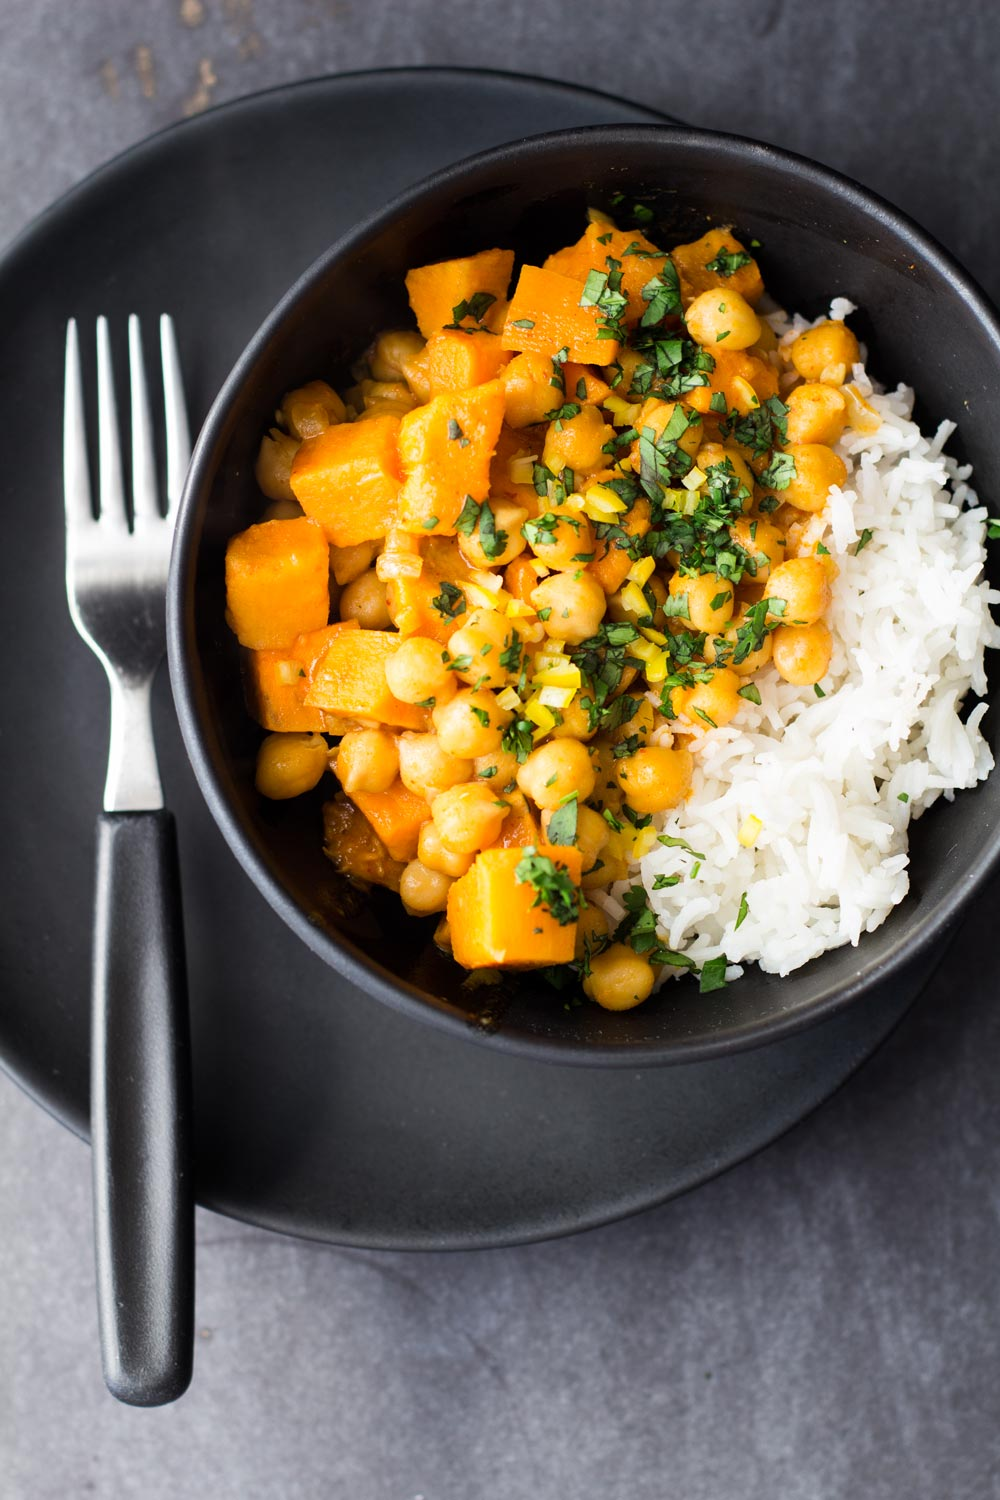 Vegan Sweet Potato & Chickpea Curry from Green Healthy Cooking - easy, vegetarian recipes under 30 minutes.